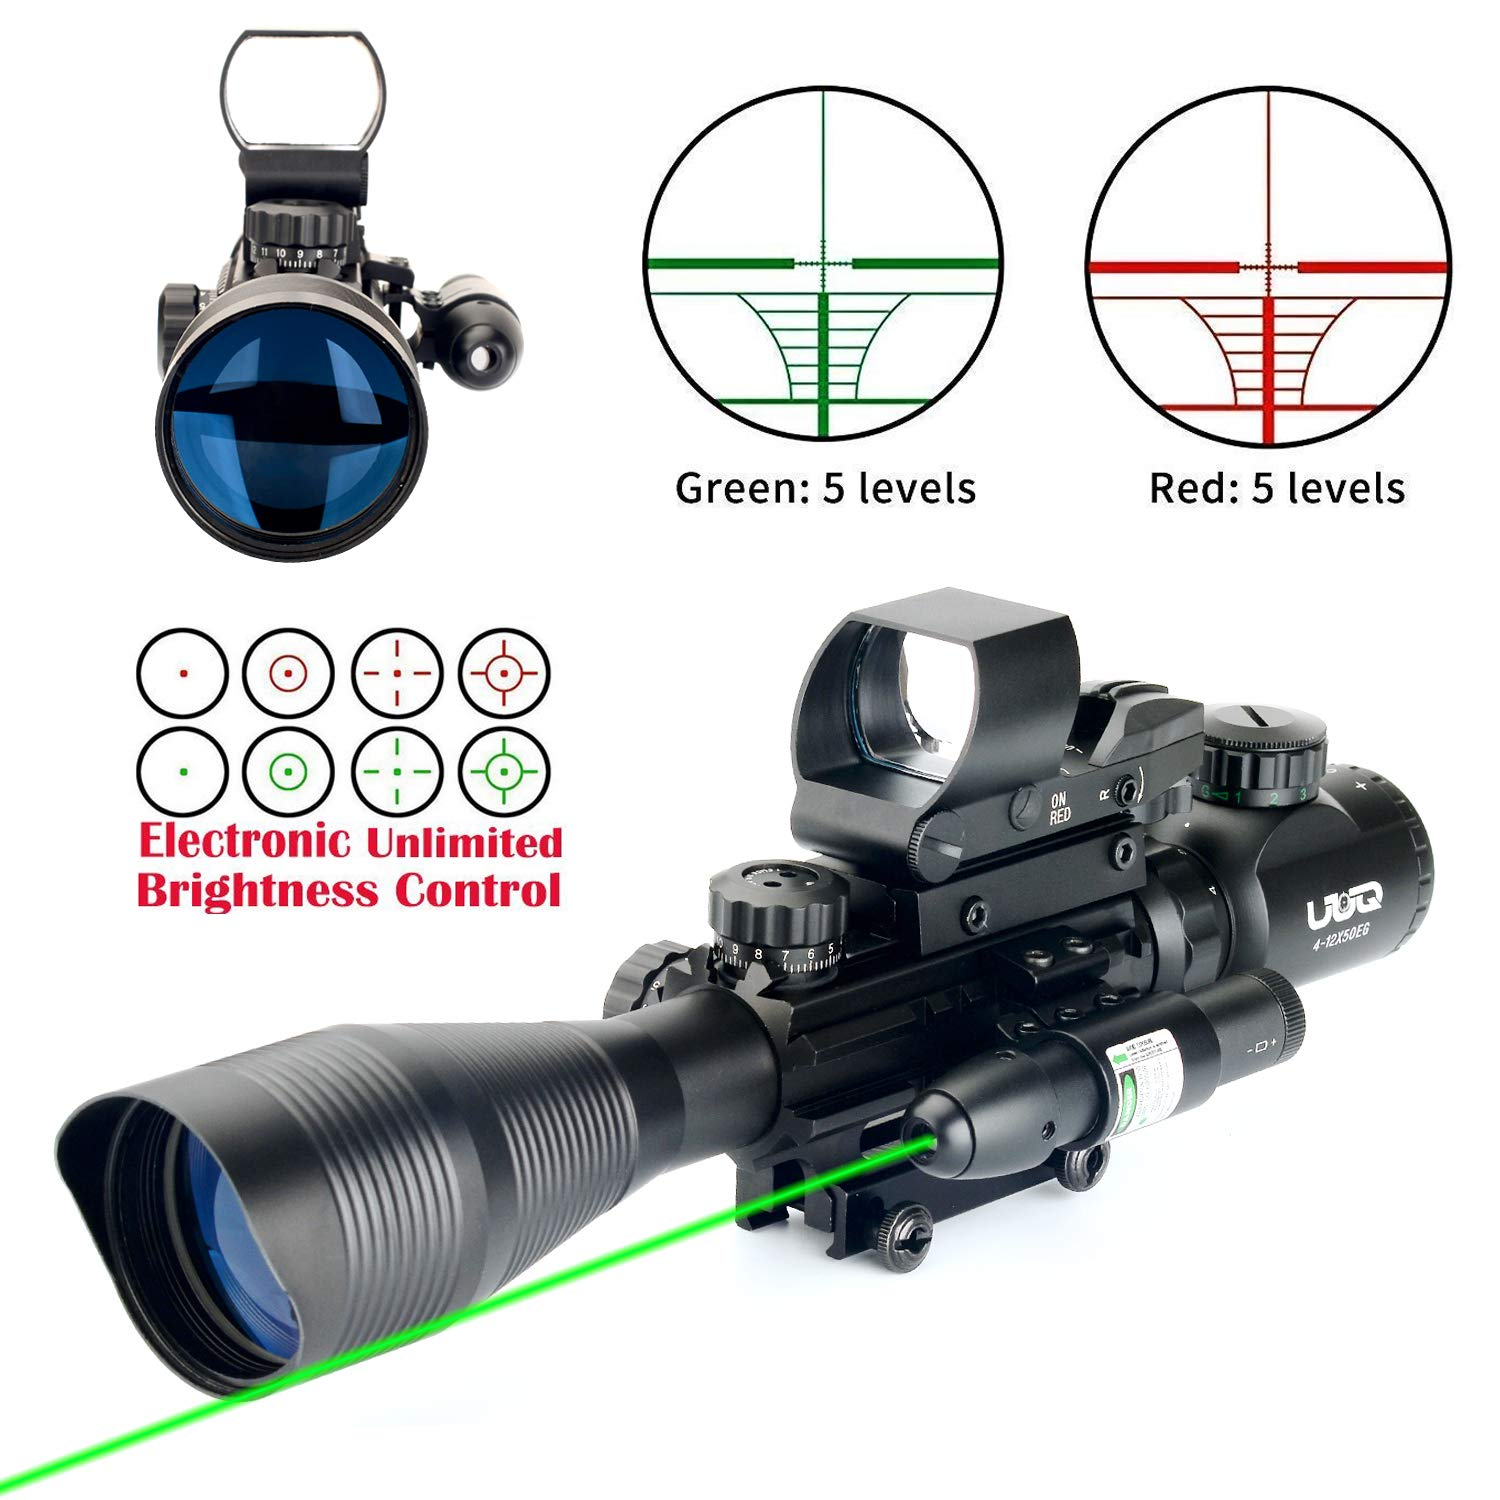 UUQ 4-12X50 Rifle Scope Dual Illuminated Reticle W/Green(RED) Laser Sight and 4 Tactical Holographic Dot Reflex Sight (12 Month Warranty) (Green Laser + New Dot Sight) by UUQ